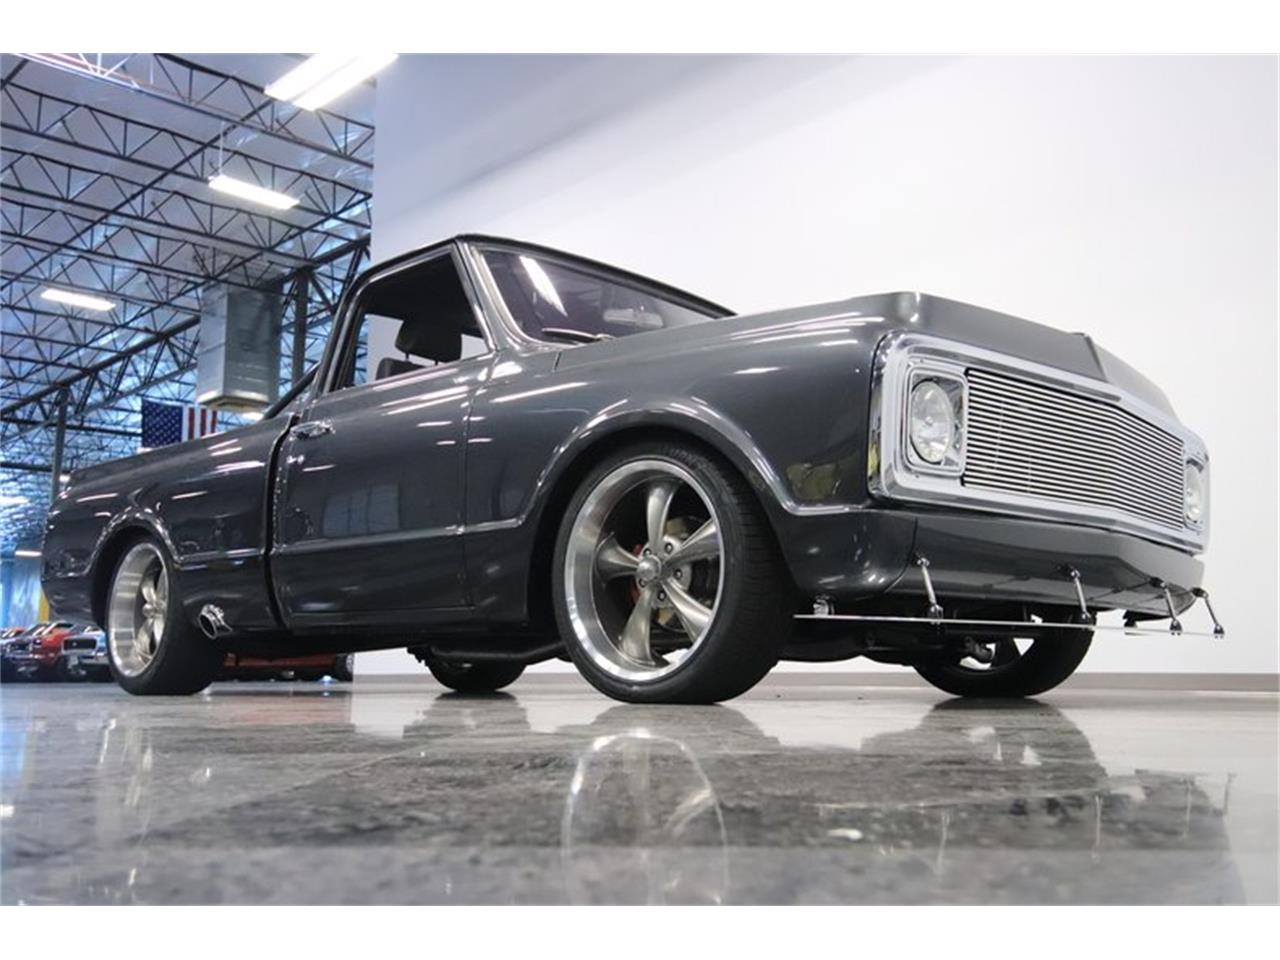 Large Picture of 1970 C10 located in Mesa Arizona - $58,995.00 Offered by Streetside Classics - Phoenix - NIMH